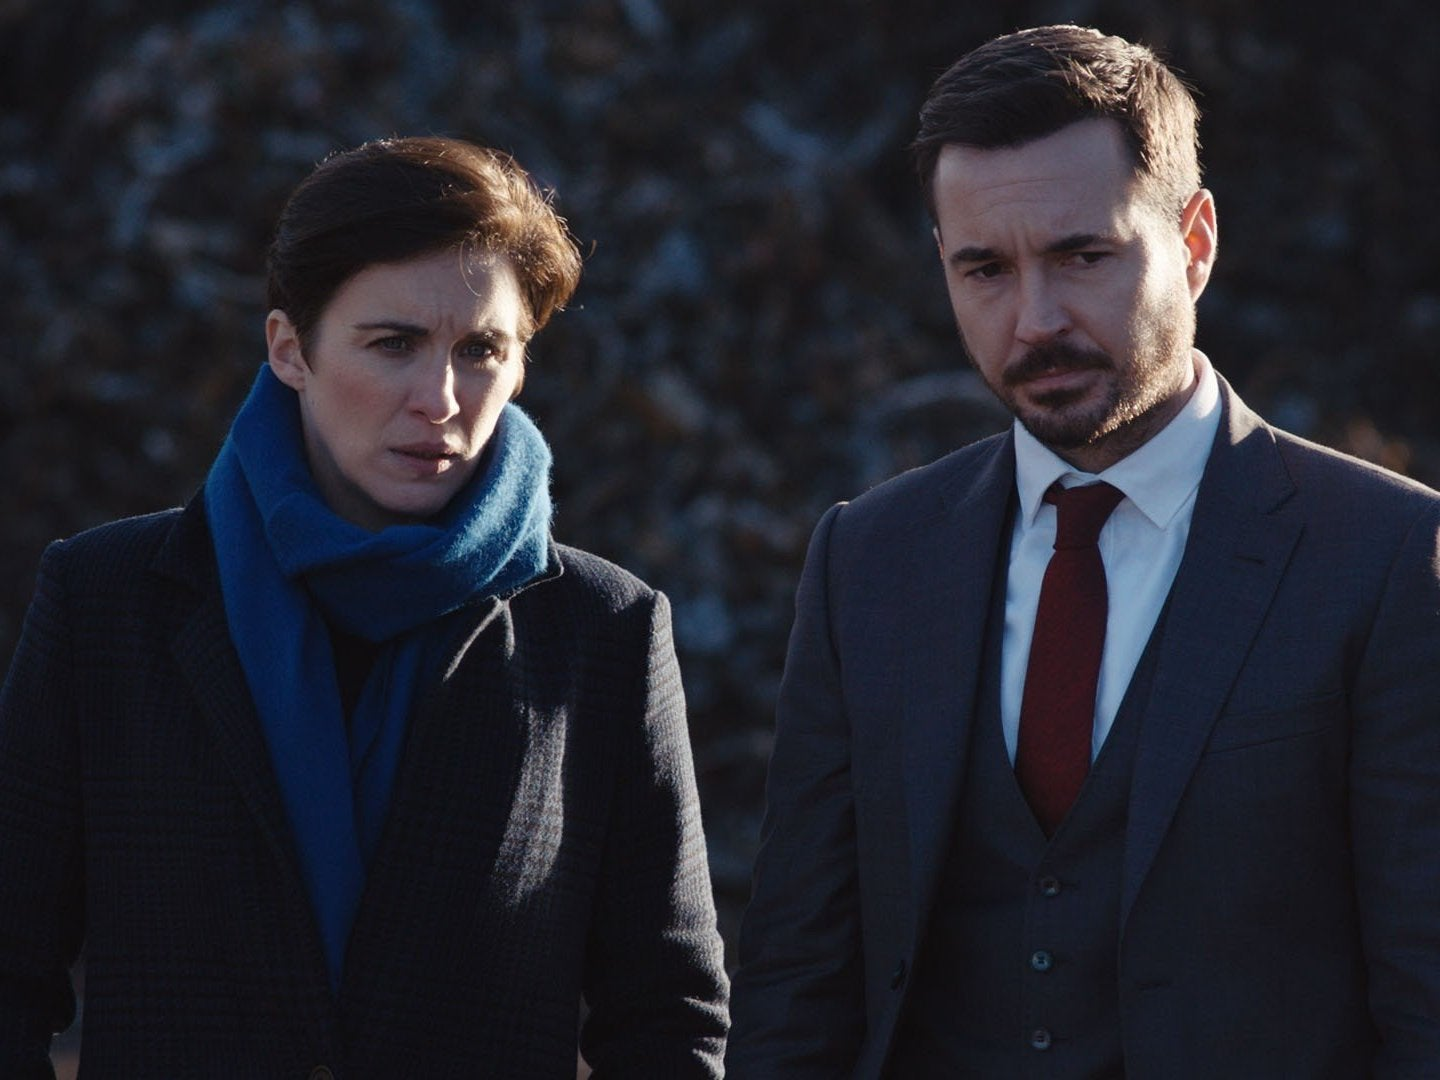 Line of Duty series 5, episode 5 review: A winningly tense